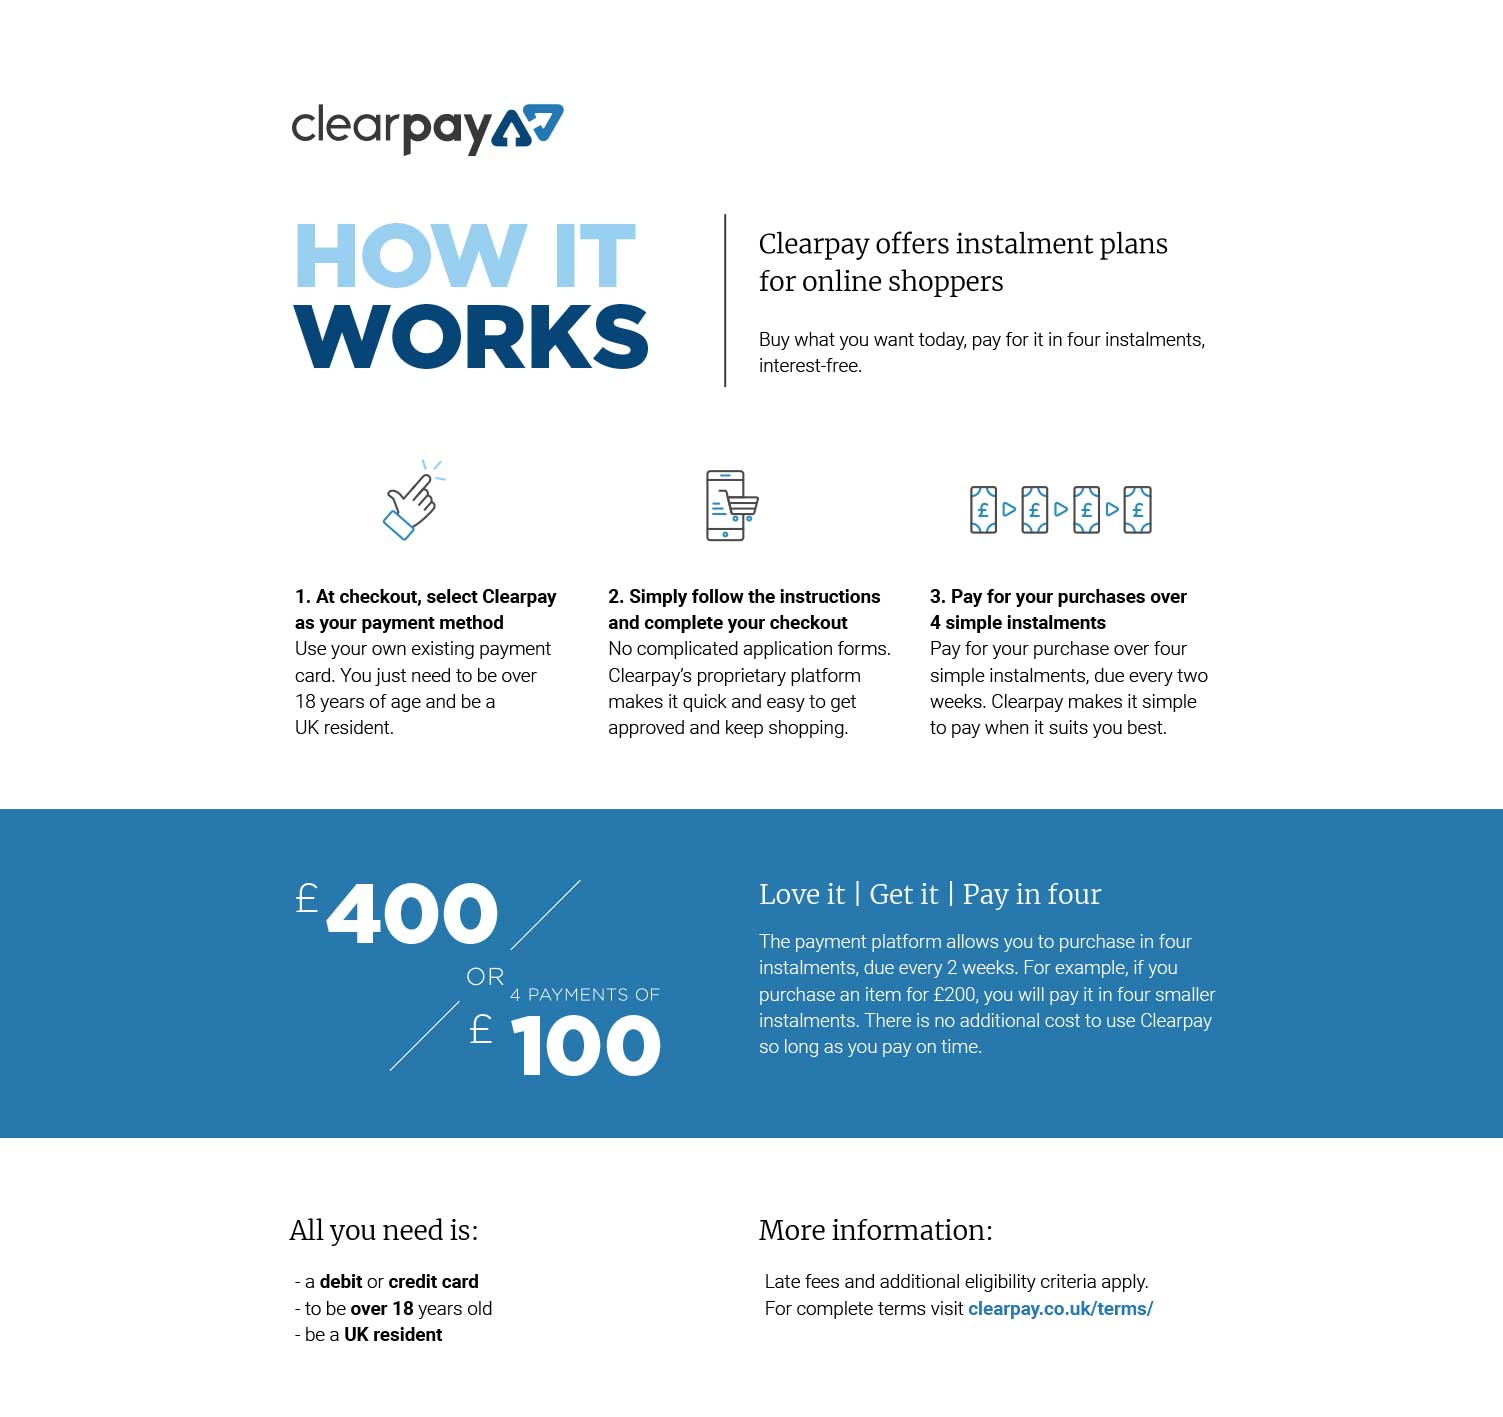 clear pay info